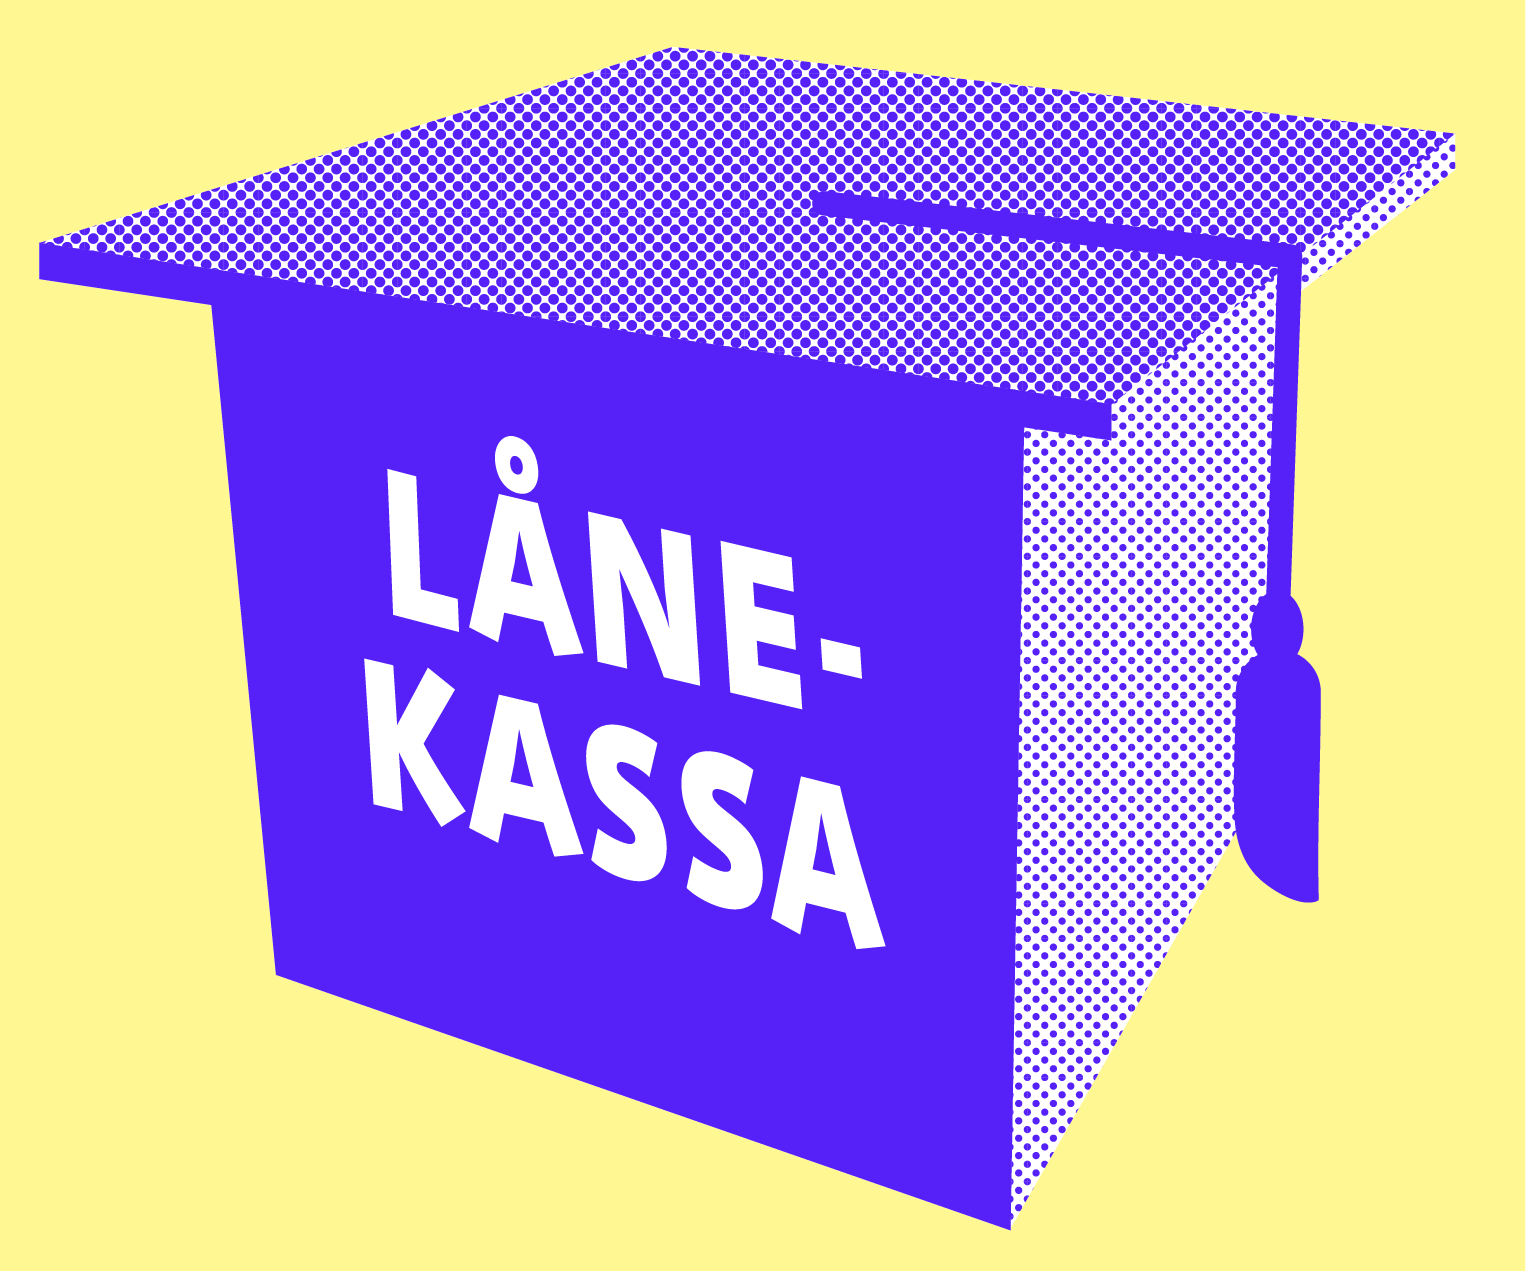 Lånekassa - Expert on making higher education accessible to allLots of knowledge to shareMotto: We make education possible!